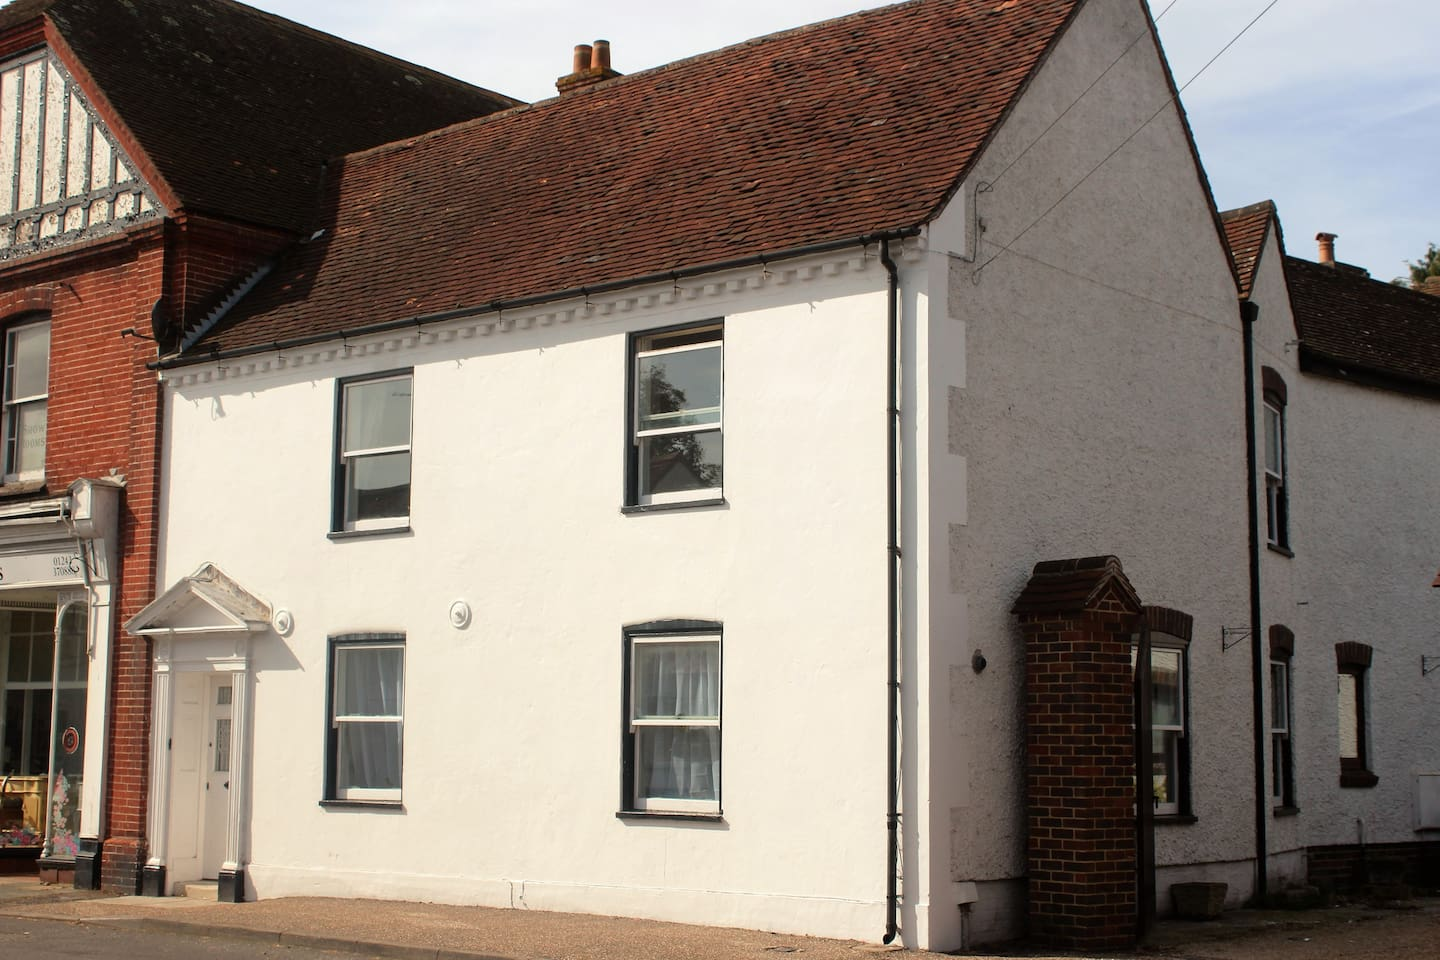 Manchester Cottage is located in the centre of Westbourne, close to shops and pubs.